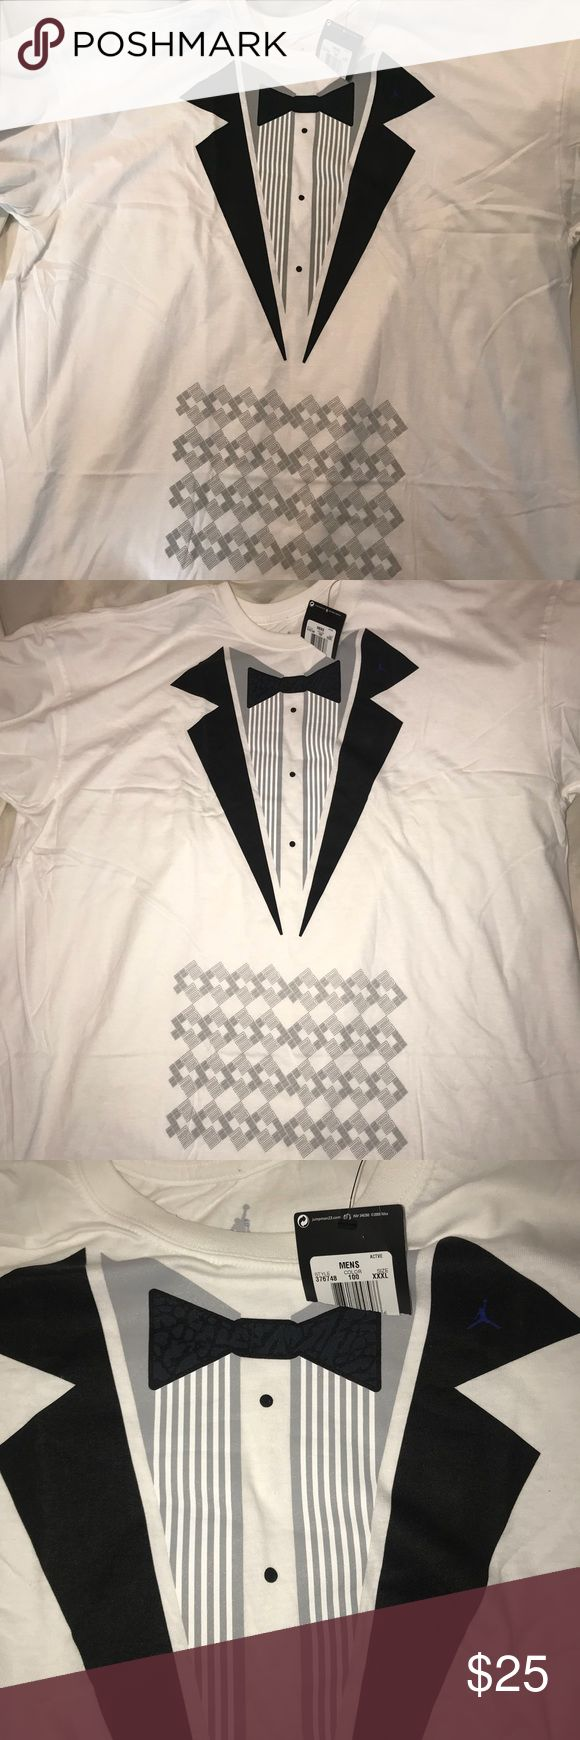 🔥NWT rare Jordan tuxedo space jam shirt Brand new with tags.   Pairs perfectly with Air Jordan retro 11 space jam   Comes from a smoke/pet free home Air Jordan Shirts Tees - Short Sleeve